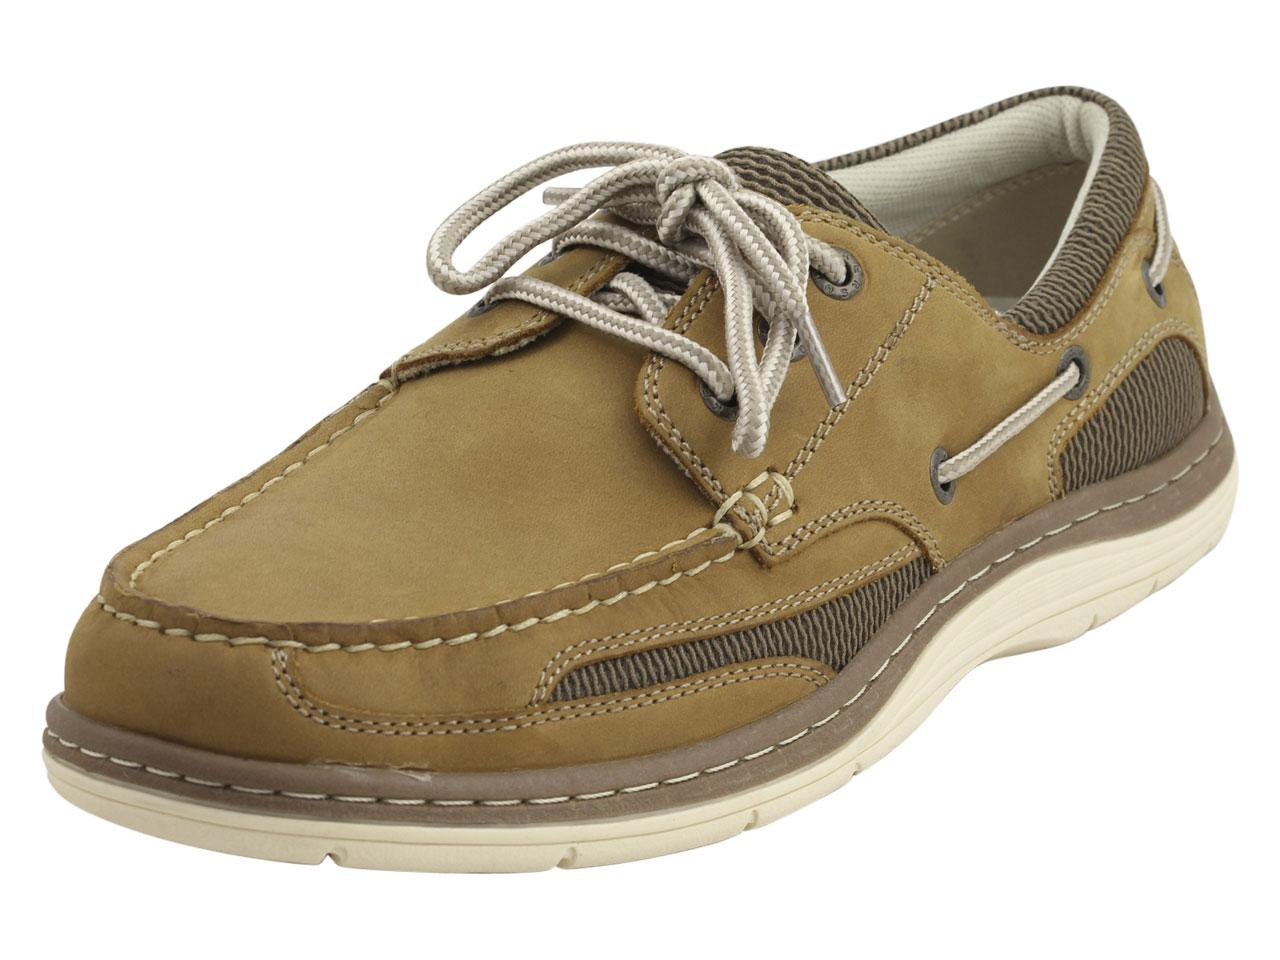 Image of Dockers Men's Lakeport Memory Foam Loafers Boat Shoes - Brown - 9 D(M) US